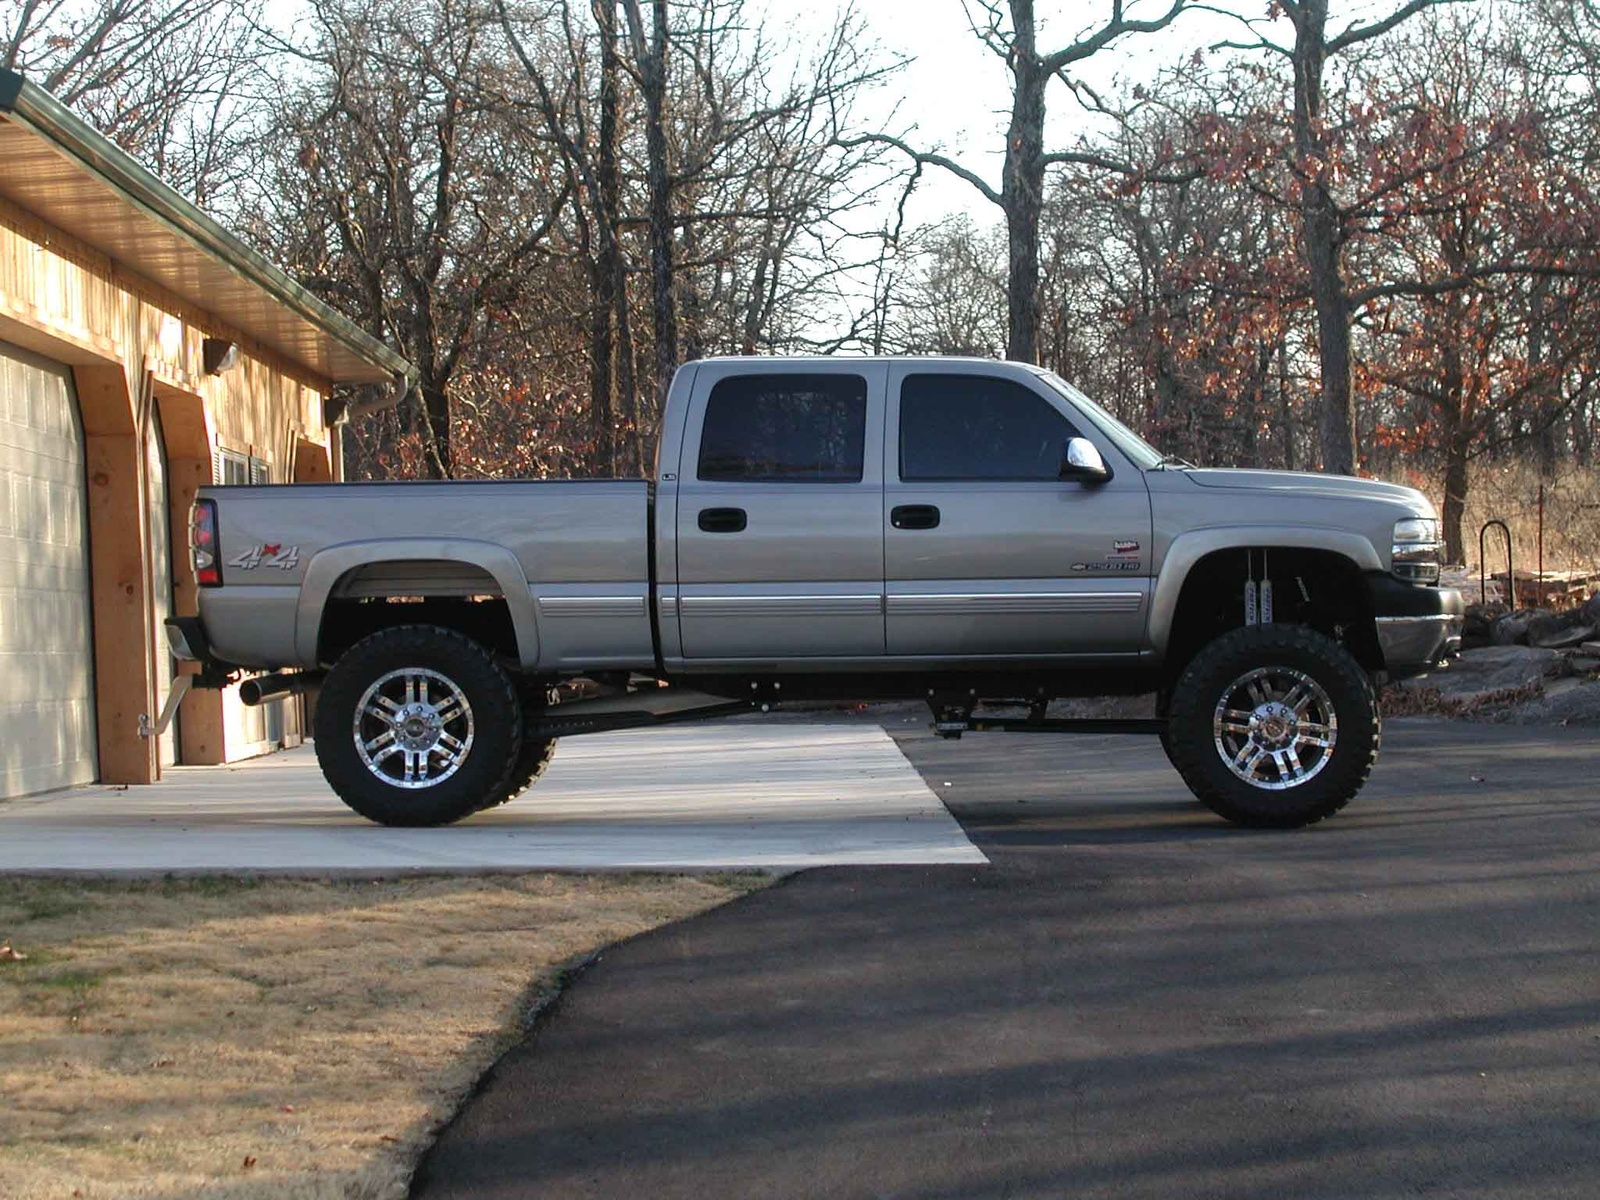 2004 chevrolet silverado 2500hd 4 dr std crew cab lb hd picture. Cars Review. Best American Auto & Cars Review